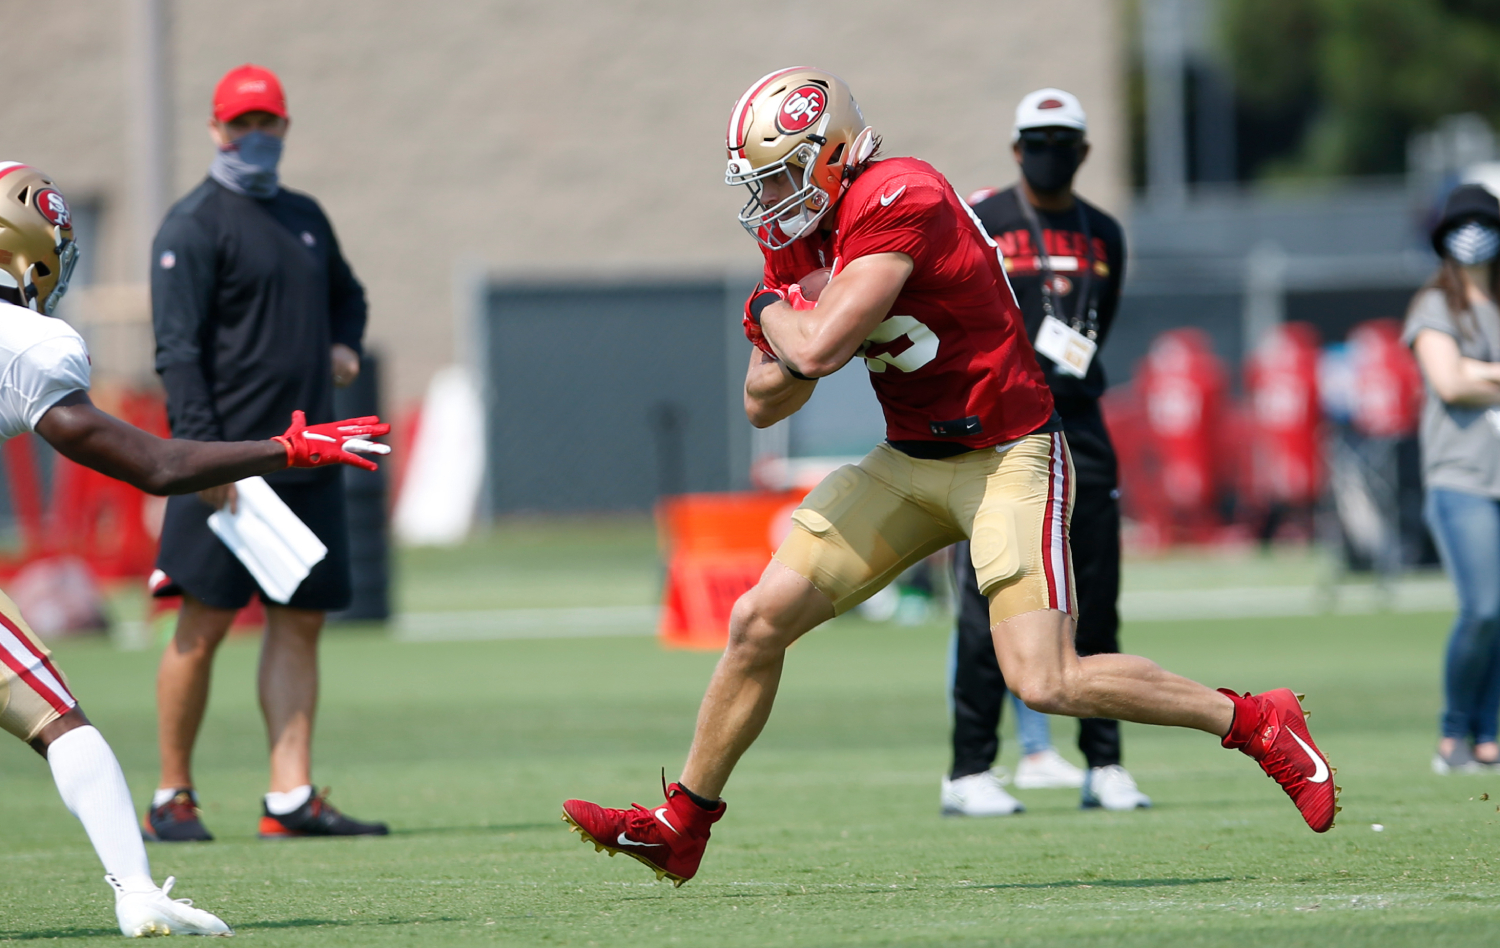 George Kittle reveals a surprising player he watches in order to improve.